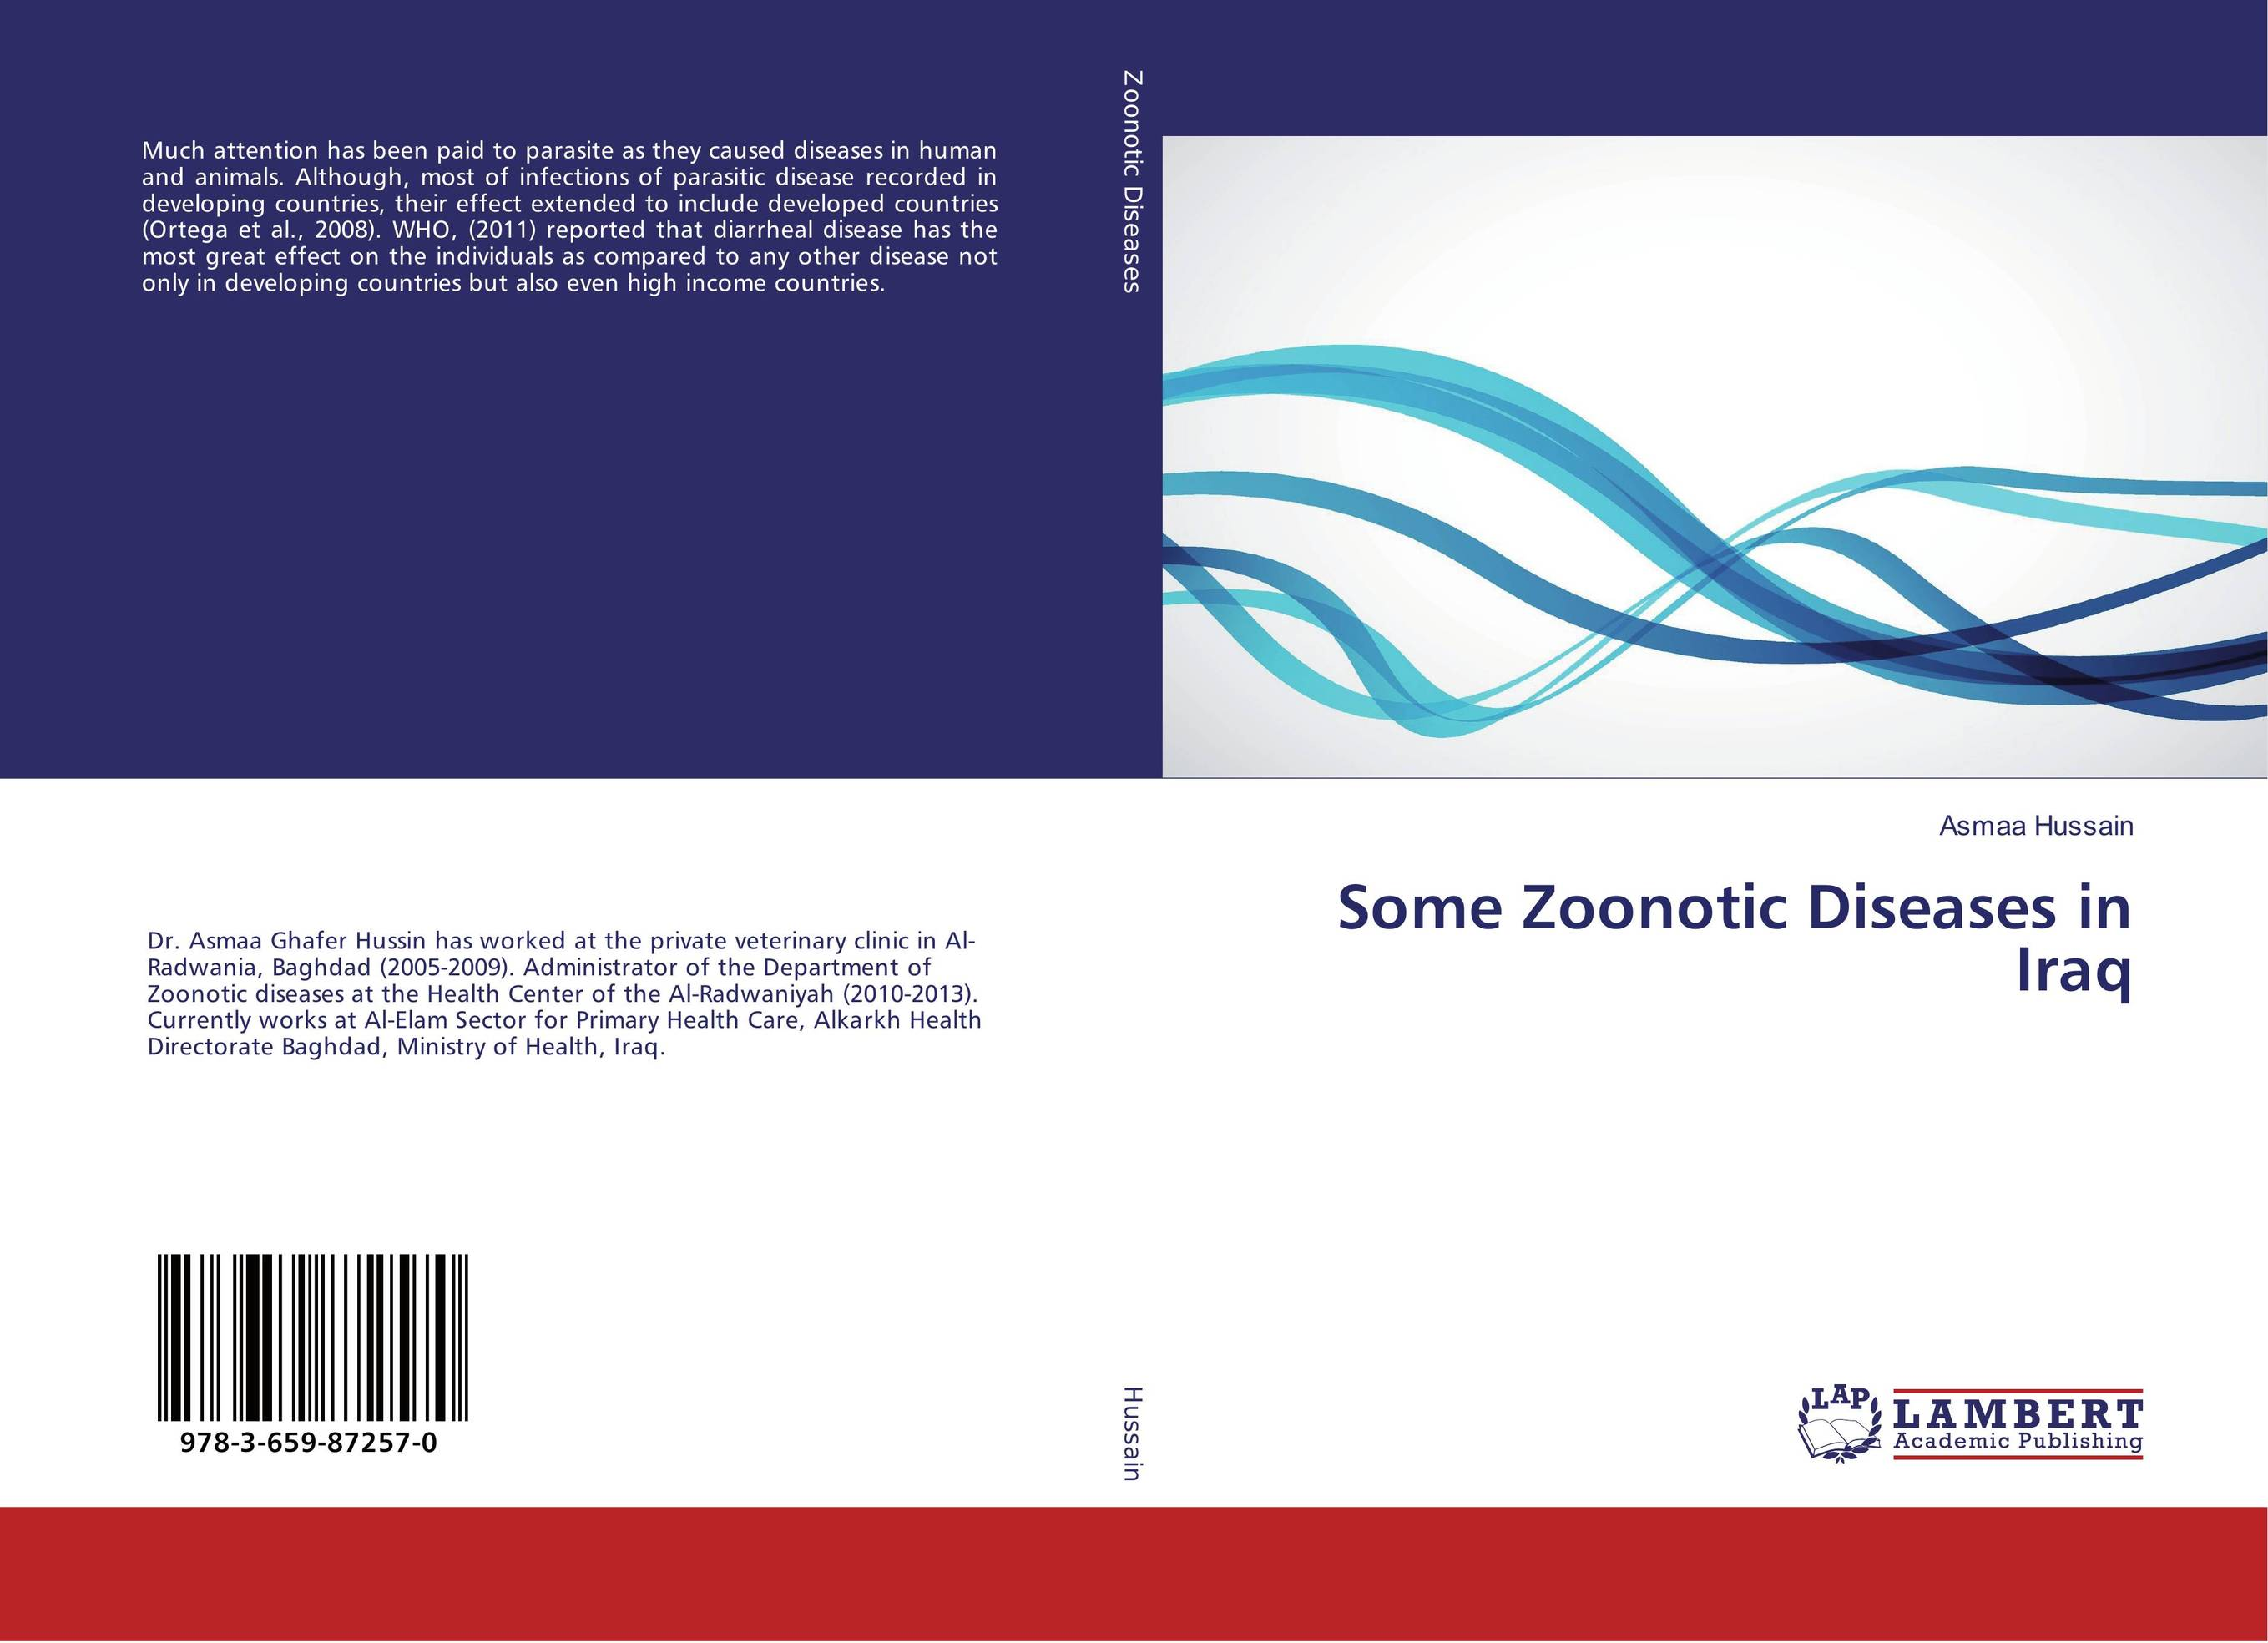 essays on zoonotic infections The ebola virus is a member of the family filoviridae and was first discovered in zaire, africa in 1976 (named after a river in the congo) the origin is unknown but is thought to be a zoonotic infection (possibly bats and monkeys.